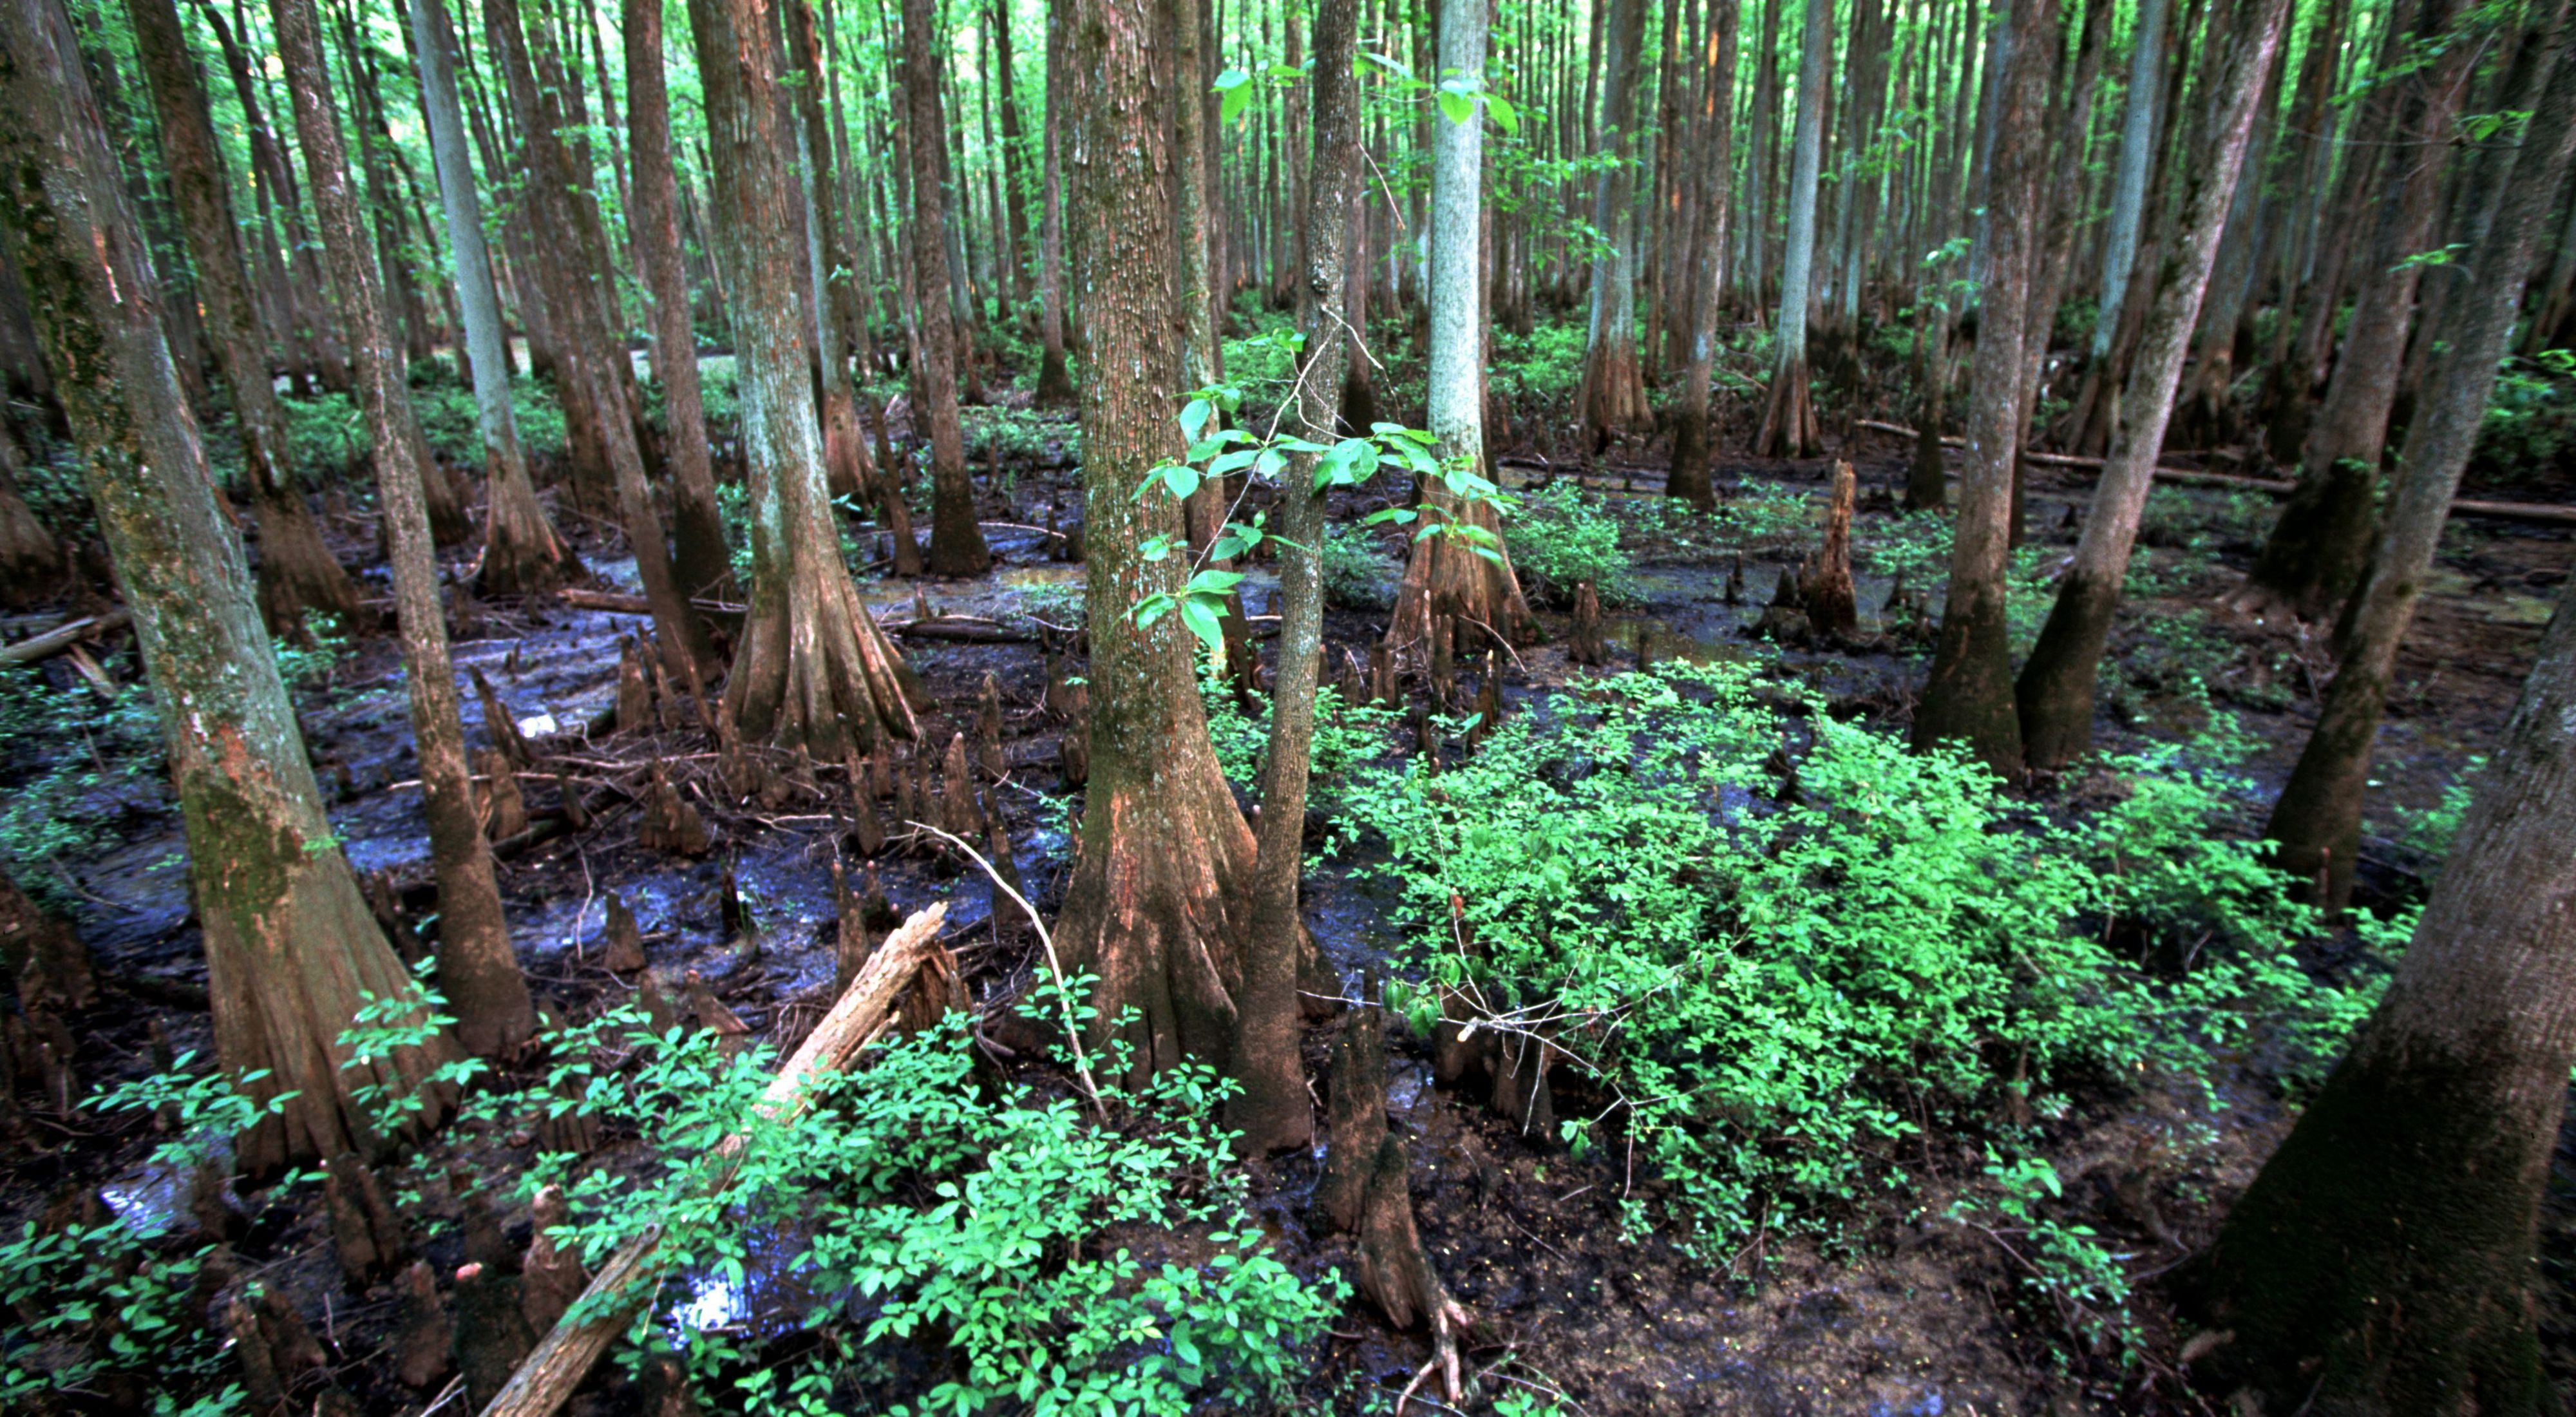 Swamp at William B. Clark Conservation Area